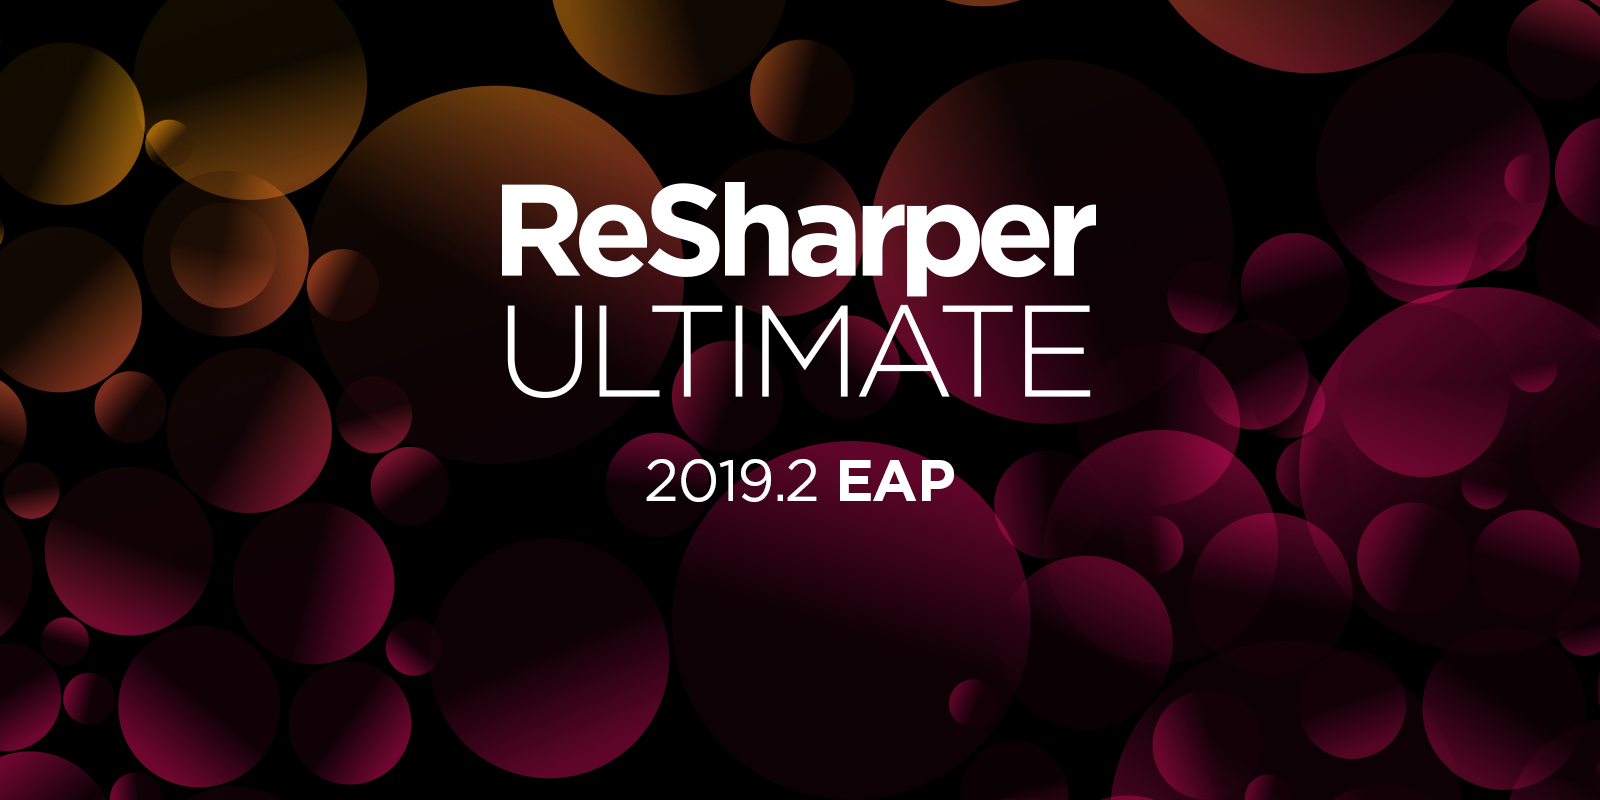 ReSharper Ultimate 2019.2 EAP